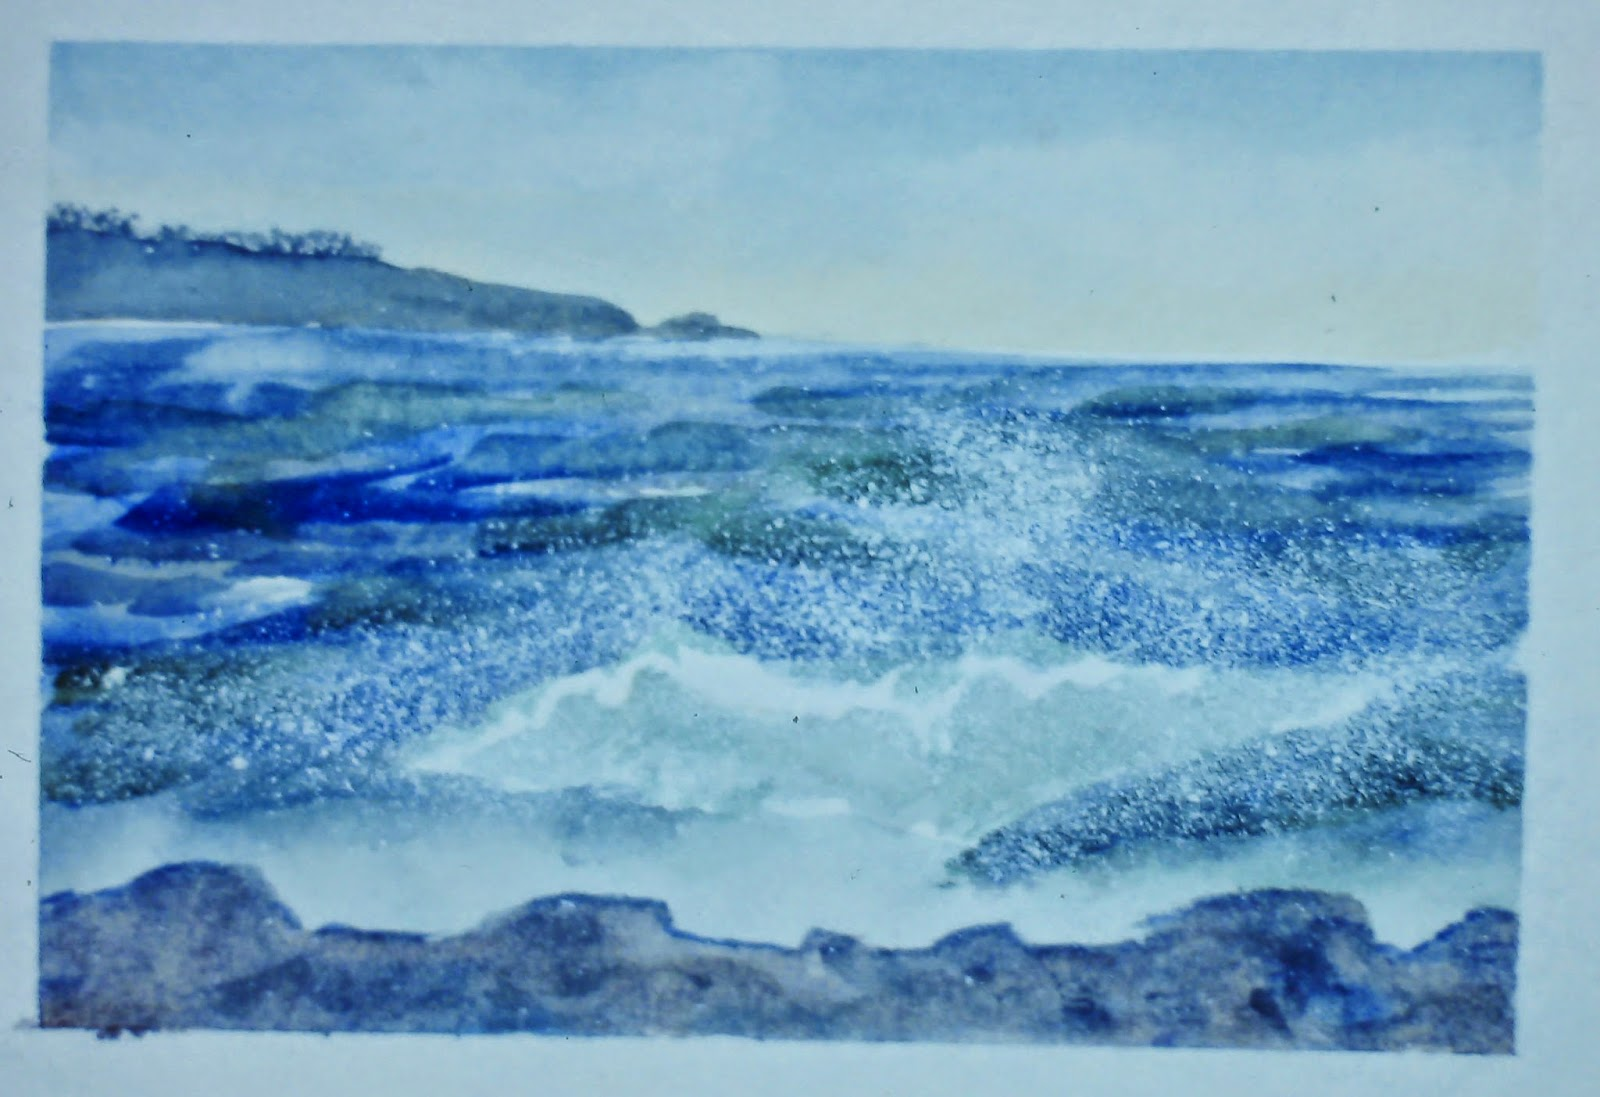 North Sea, near Stonehaven, Angus, Scotland  8x10 inches. Watercolor on paper, c. 1989.  In a private collection in St. Cyrus, Scotland